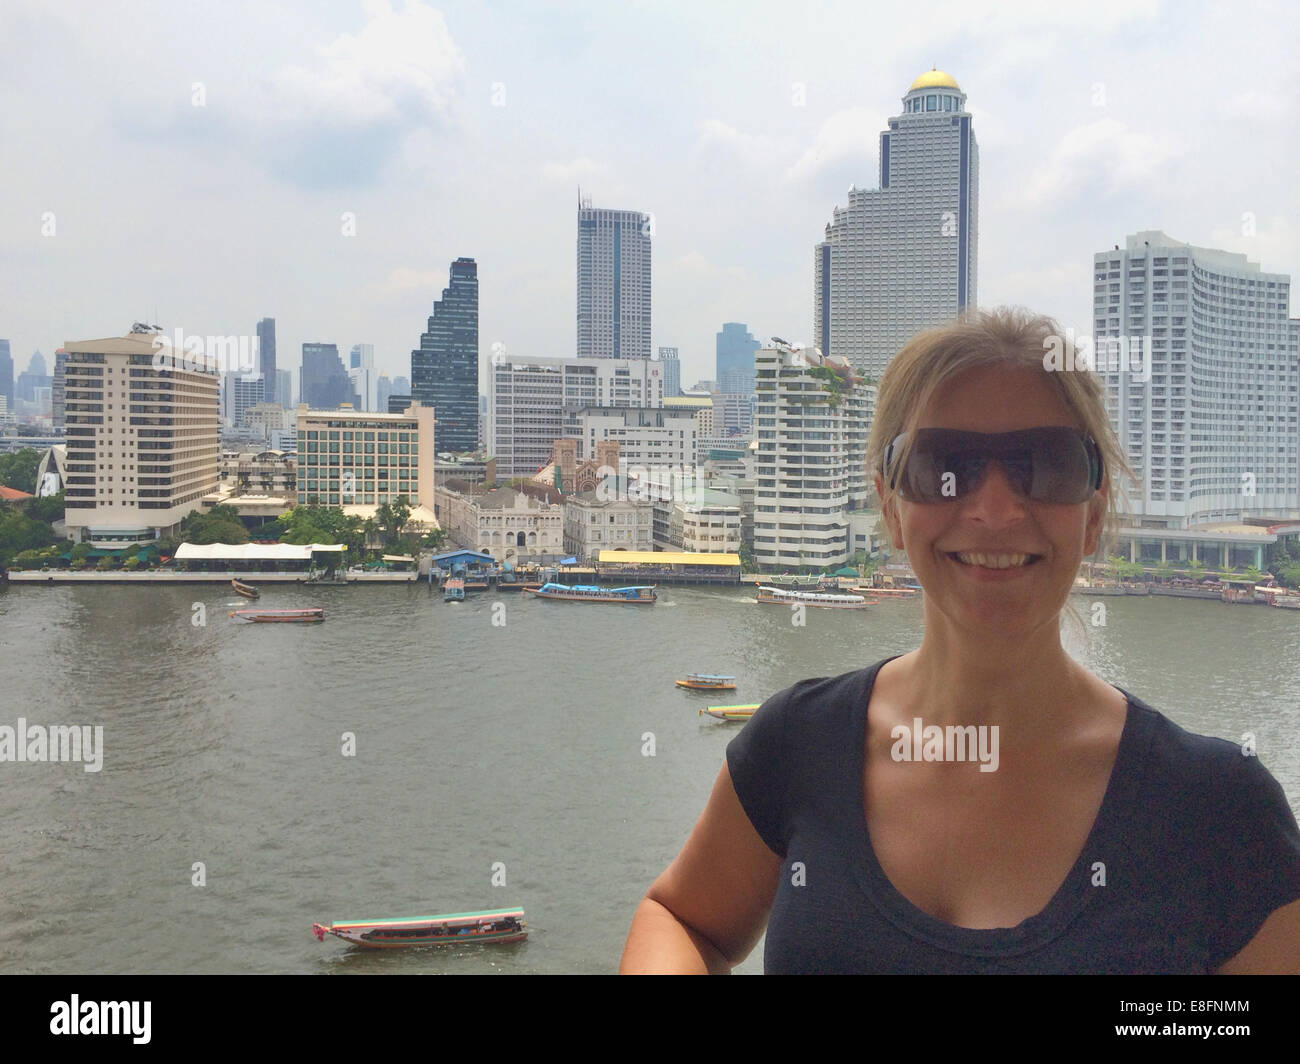 Thailand, Bangkok, Portrait of woman with cityscape in background - Stock Image